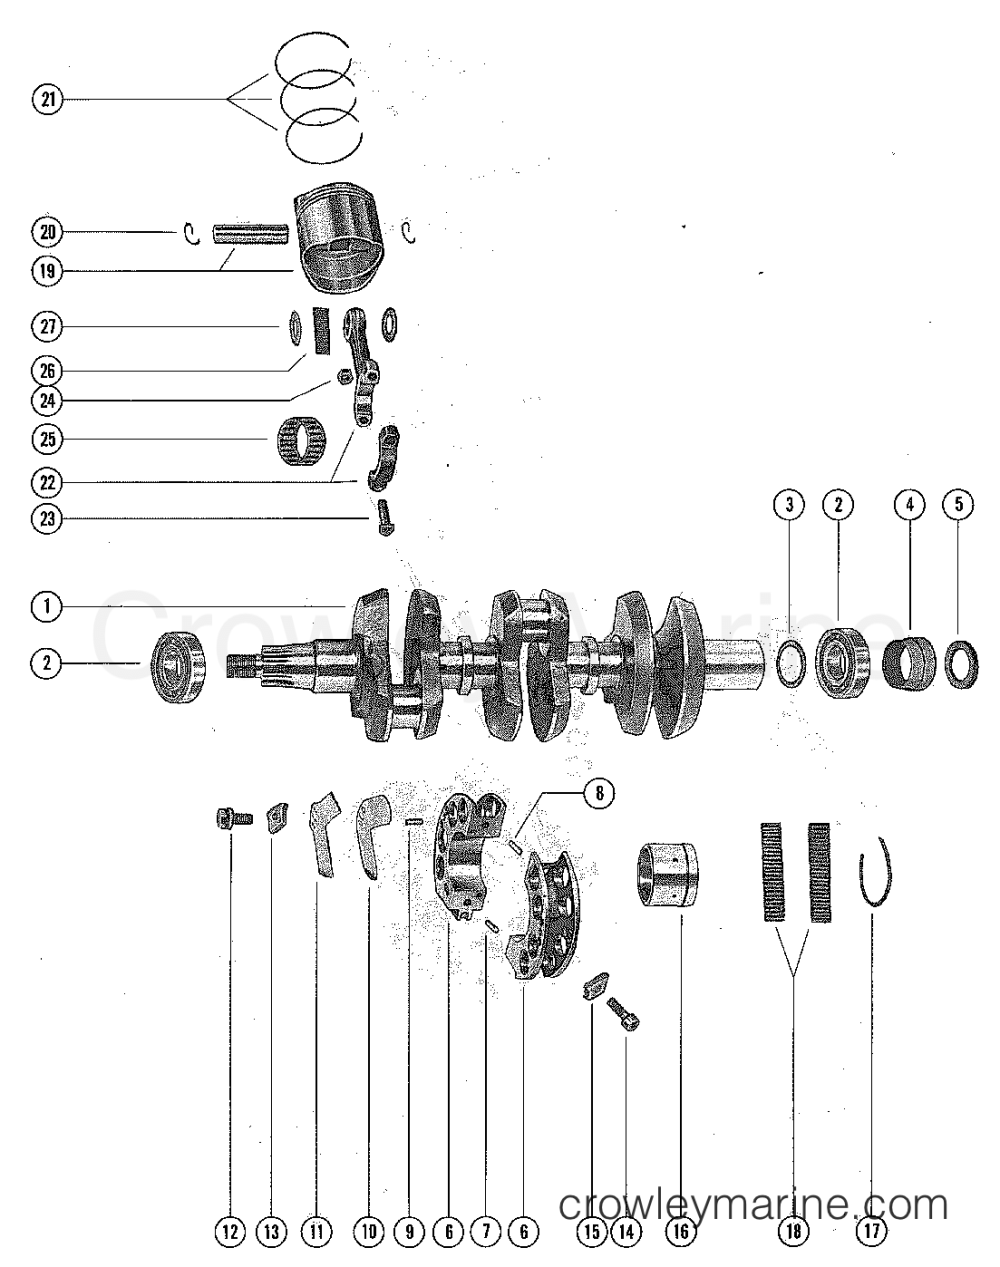 medium resolution of 1976 mercury outboard 65 1650506 crankshaft pistons and connecting rods section